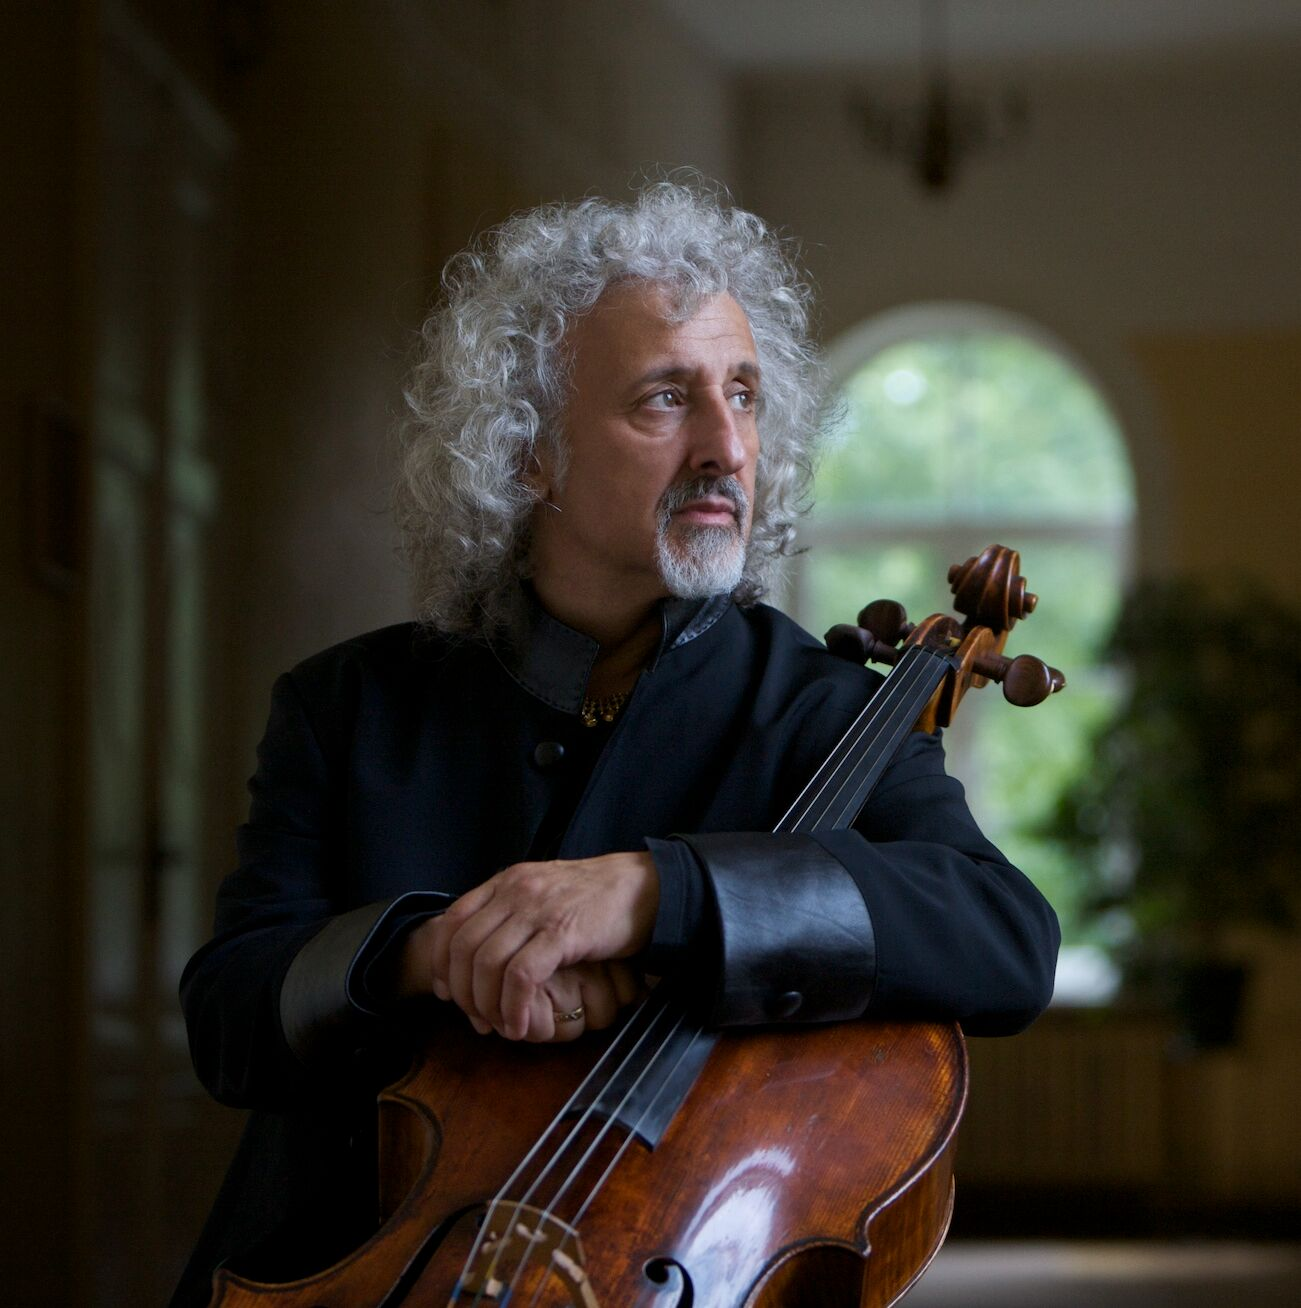 Mischa Masiky - Classical music concerts galway